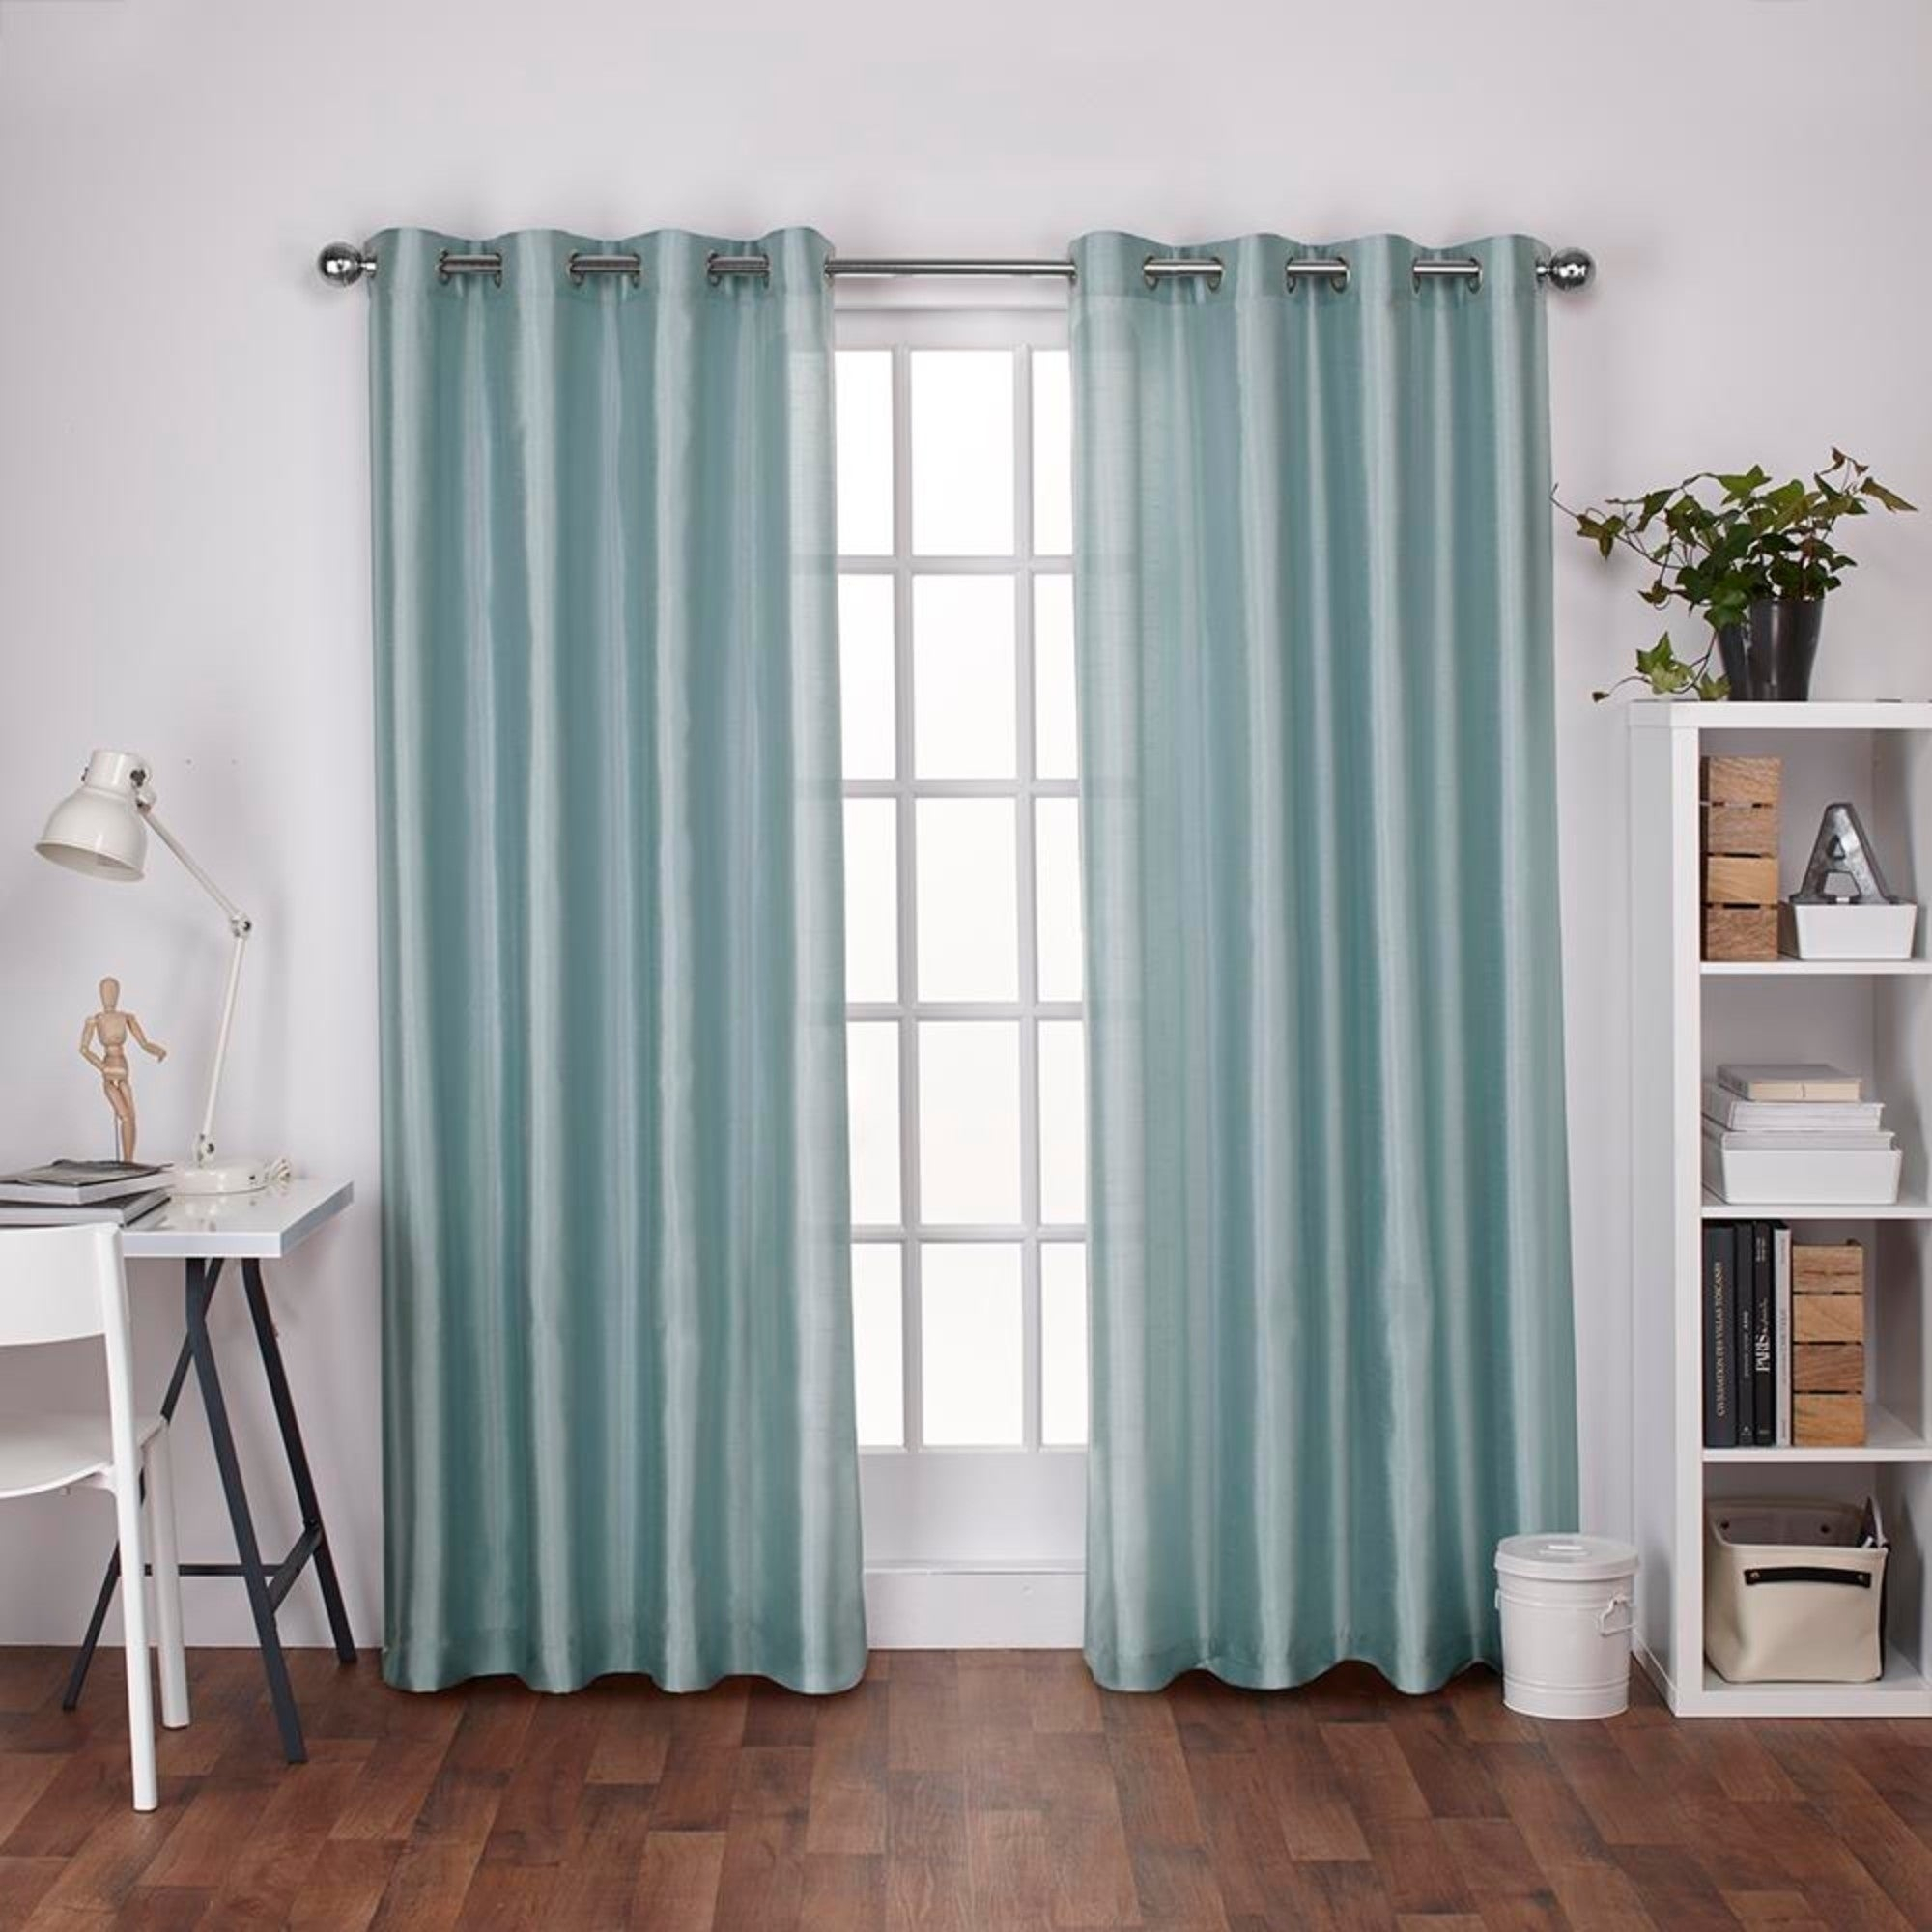 Copper Grove Fulgence Faux Silk Grommet Top Panel Curtains – N/ A Throughout Copper Grove Fulgence Faux Silk Grommet Top Panel Curtains (View 8 of 20)